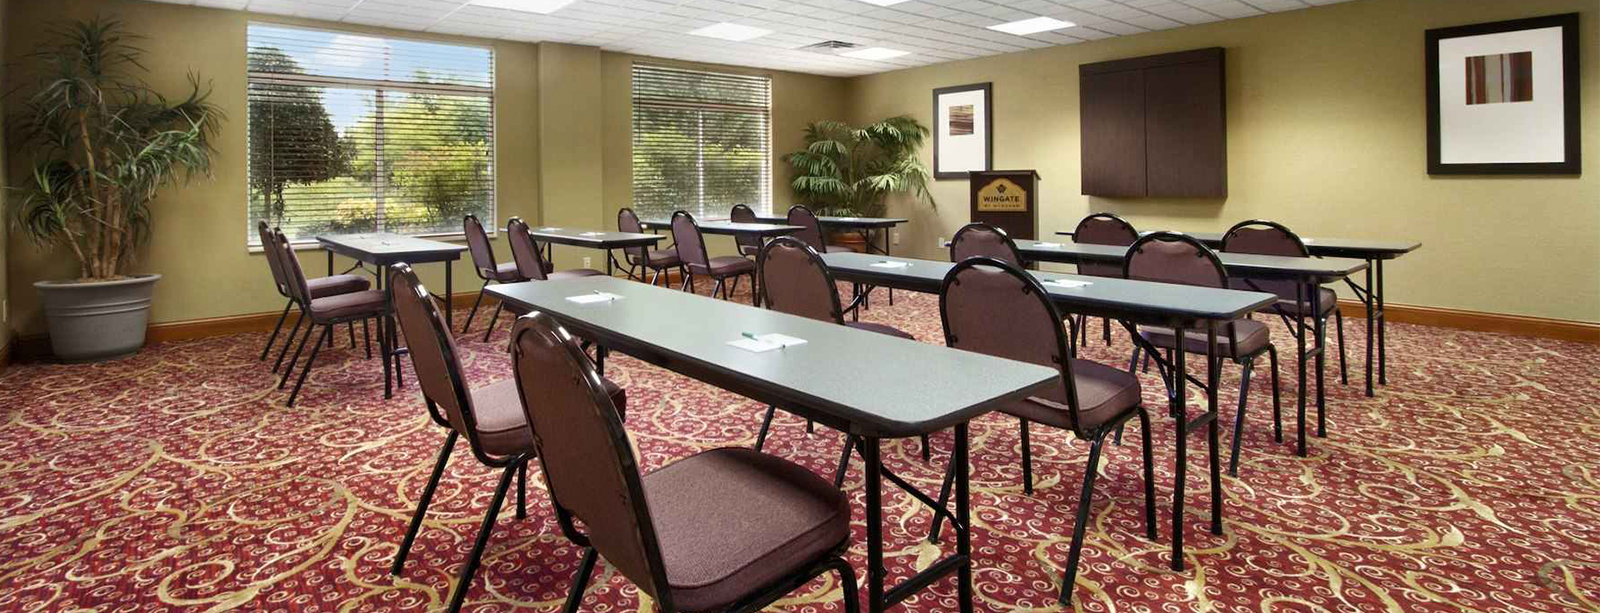 Meetings & Events in Wingate By Wyndham Chattanooga